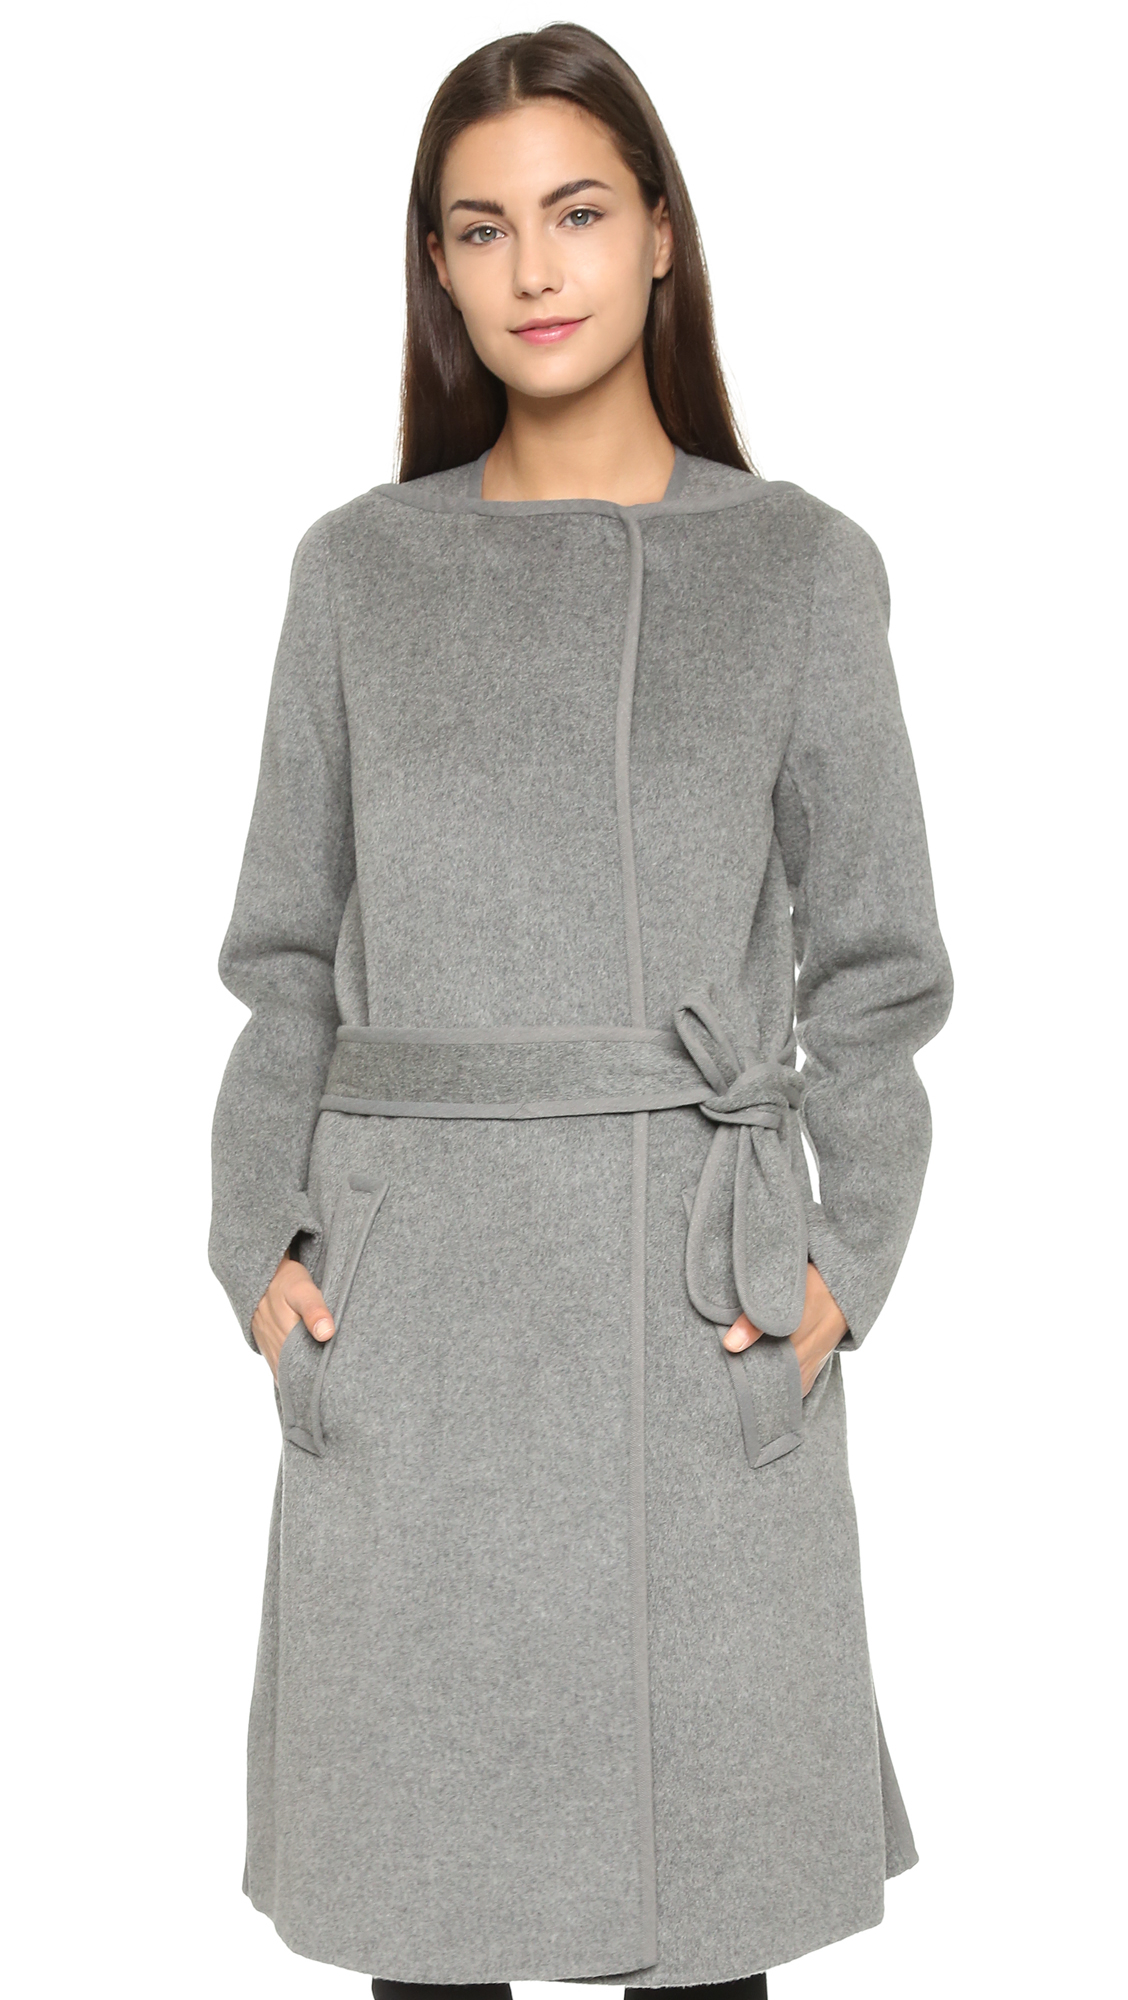 Vince Belted Car Coat - Charcoal Melange in Gray | Lyst